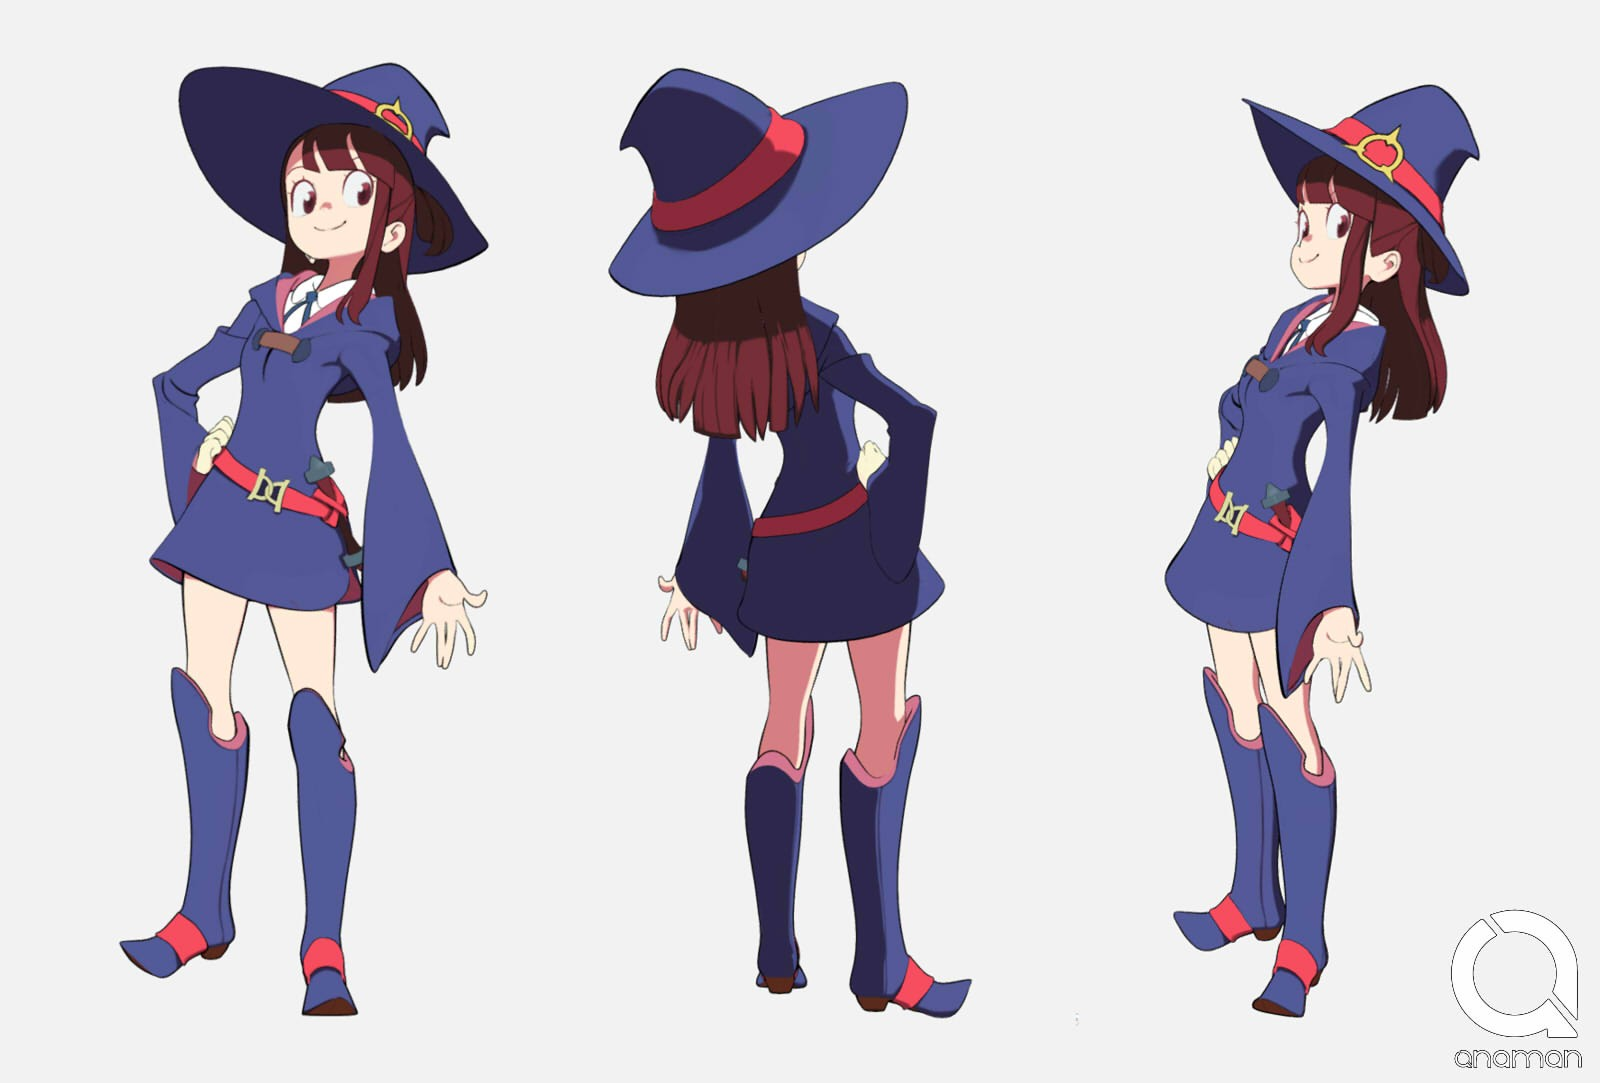 Little witch academia - Akko model 3d